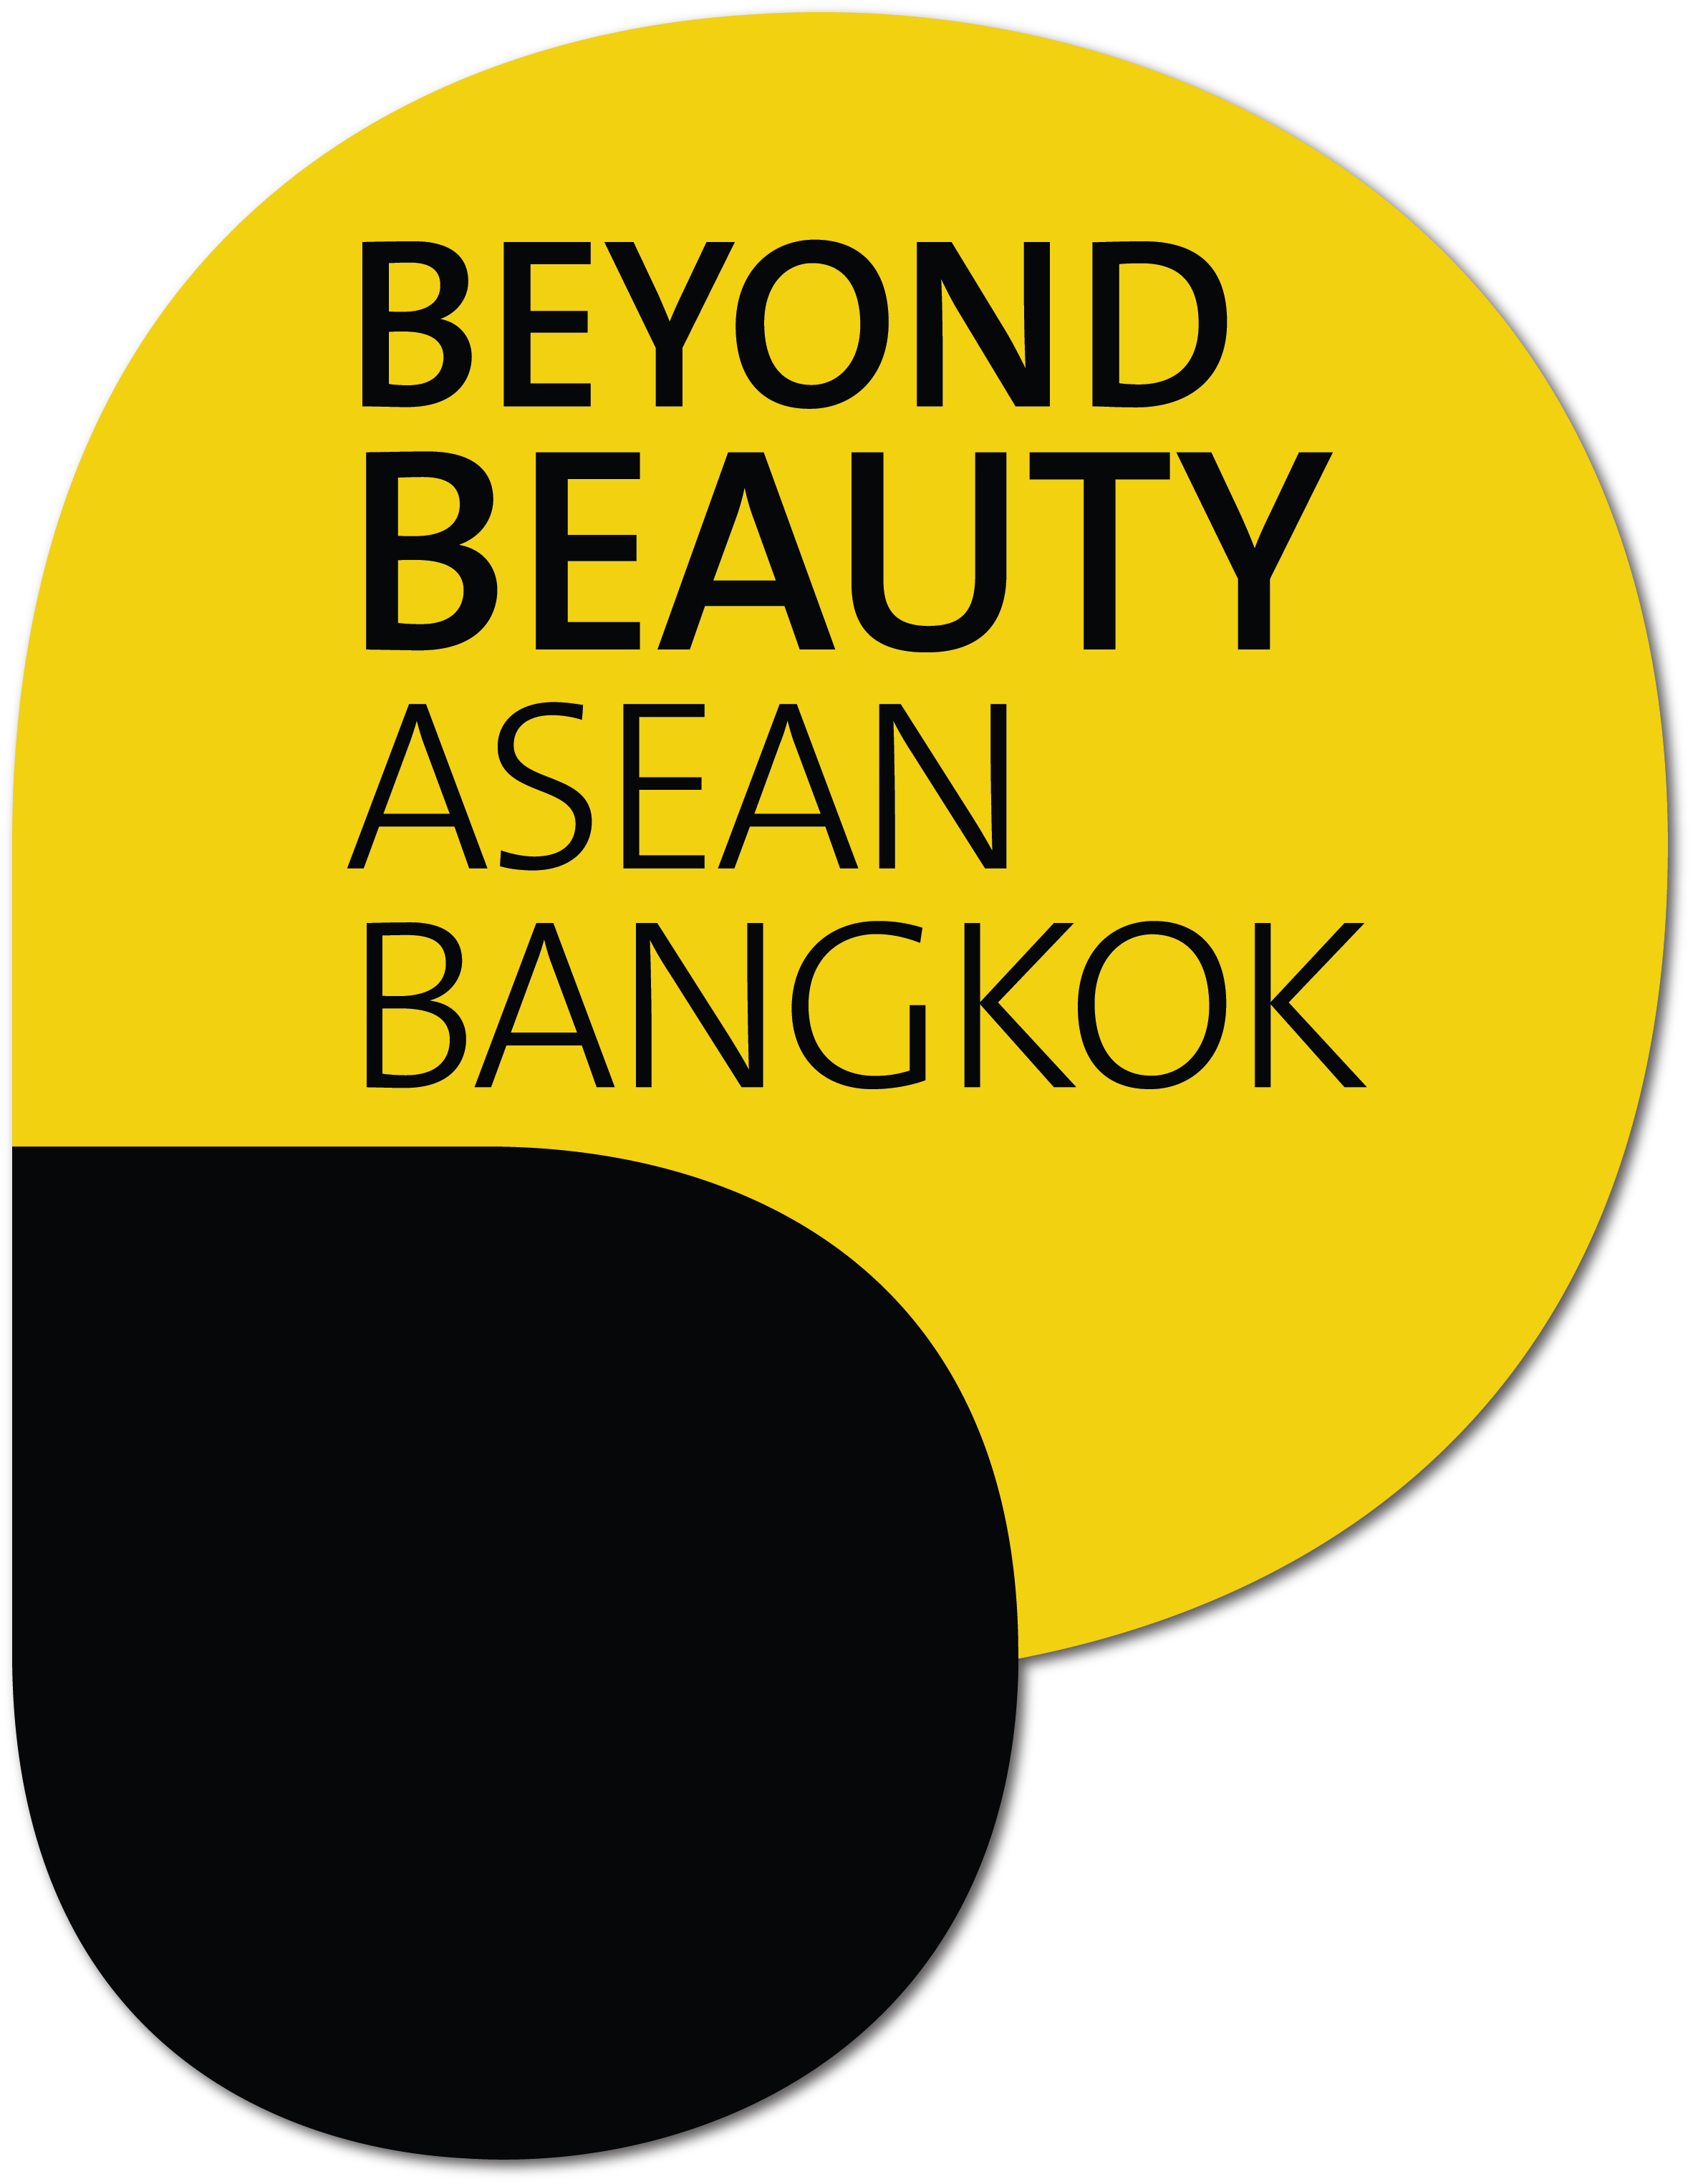 5th edition of Beyond Beauty ASEAN Bangkok is back with new concept